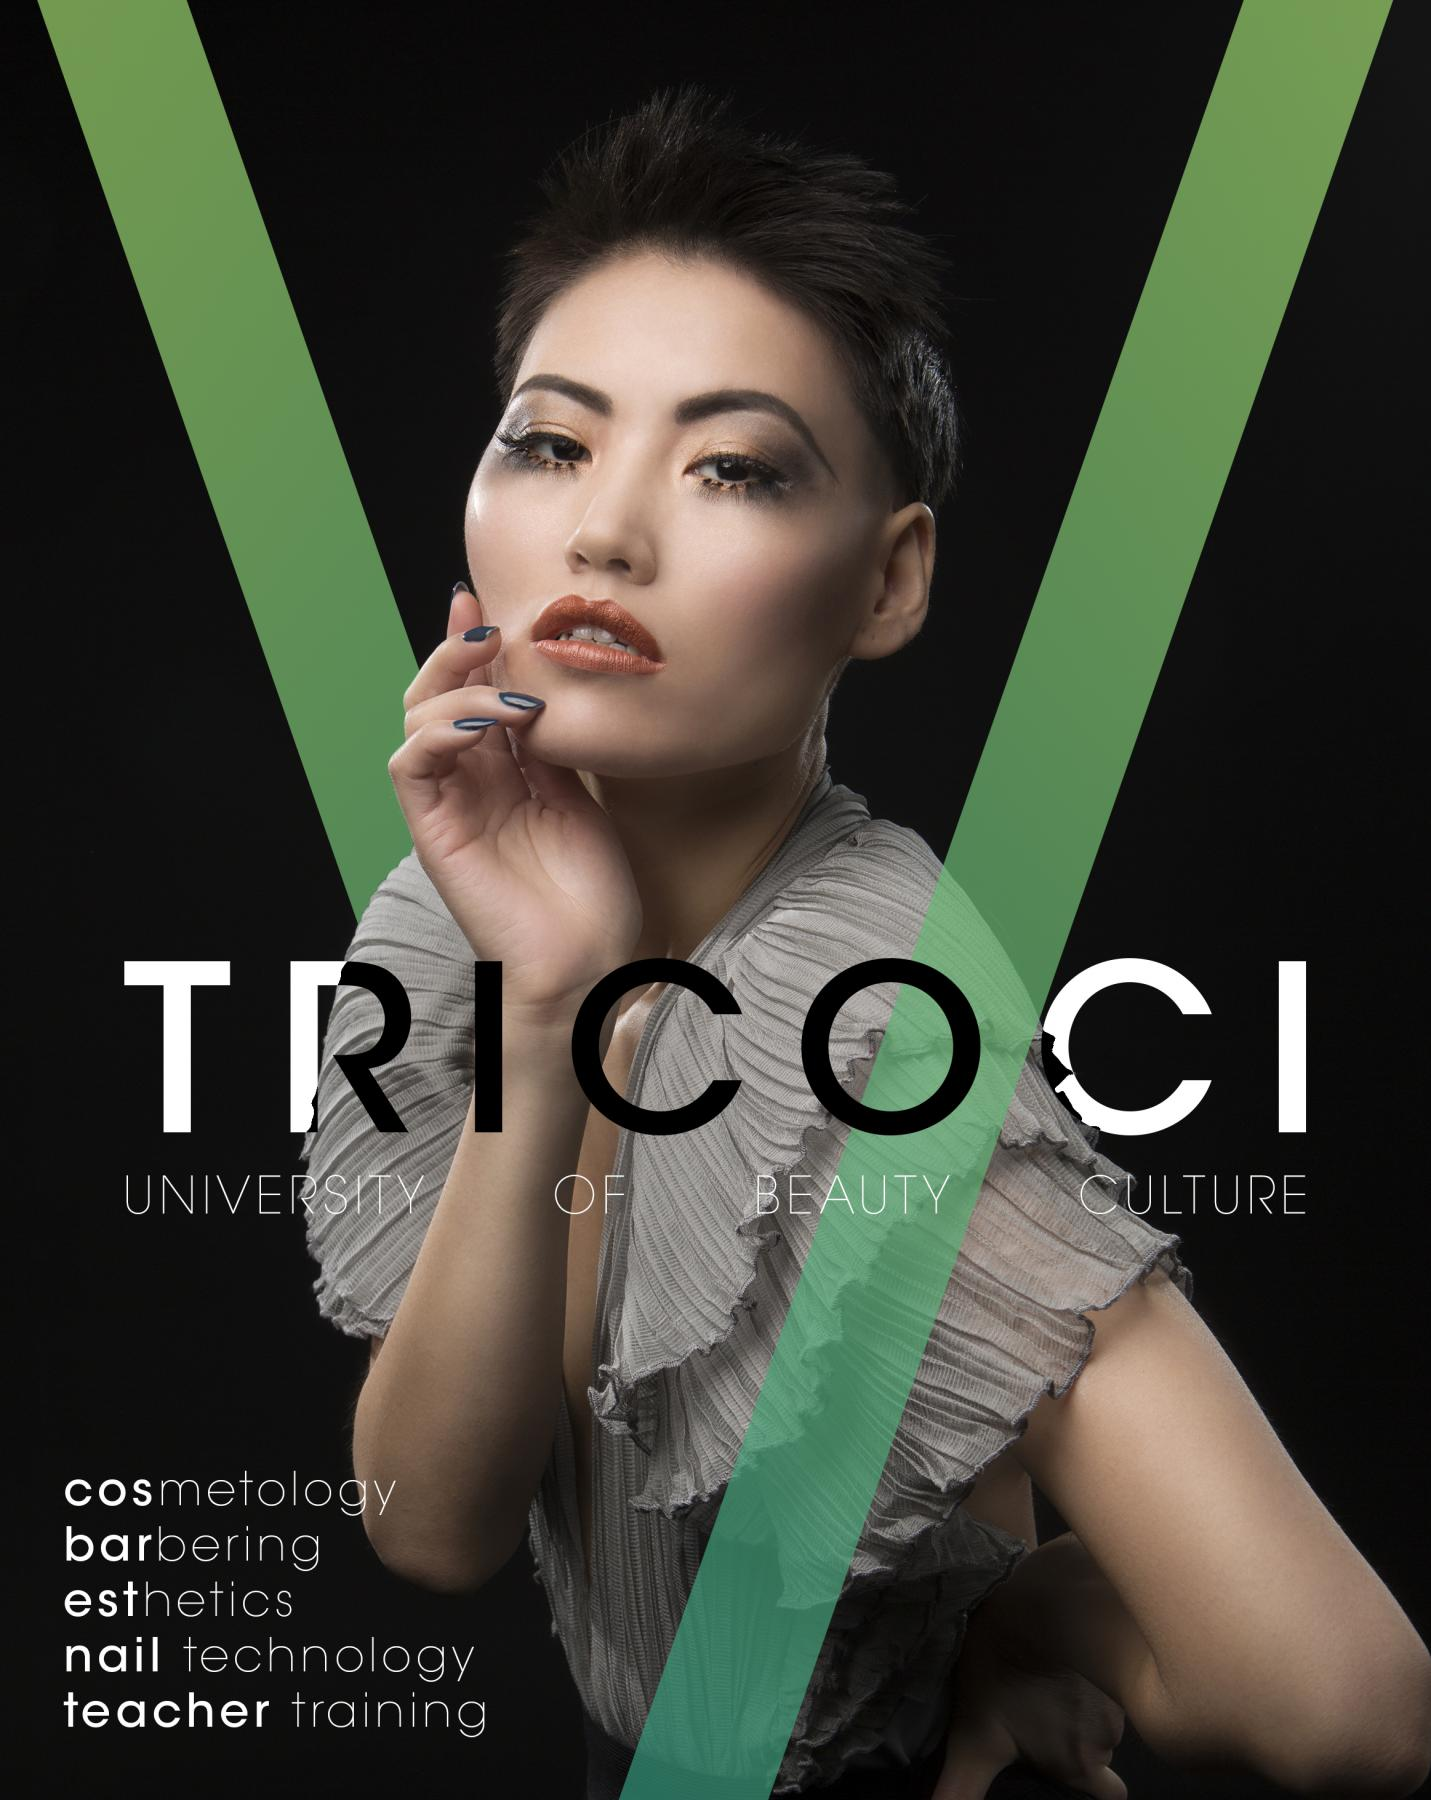 Tricoci University of Beauty Culture image 0